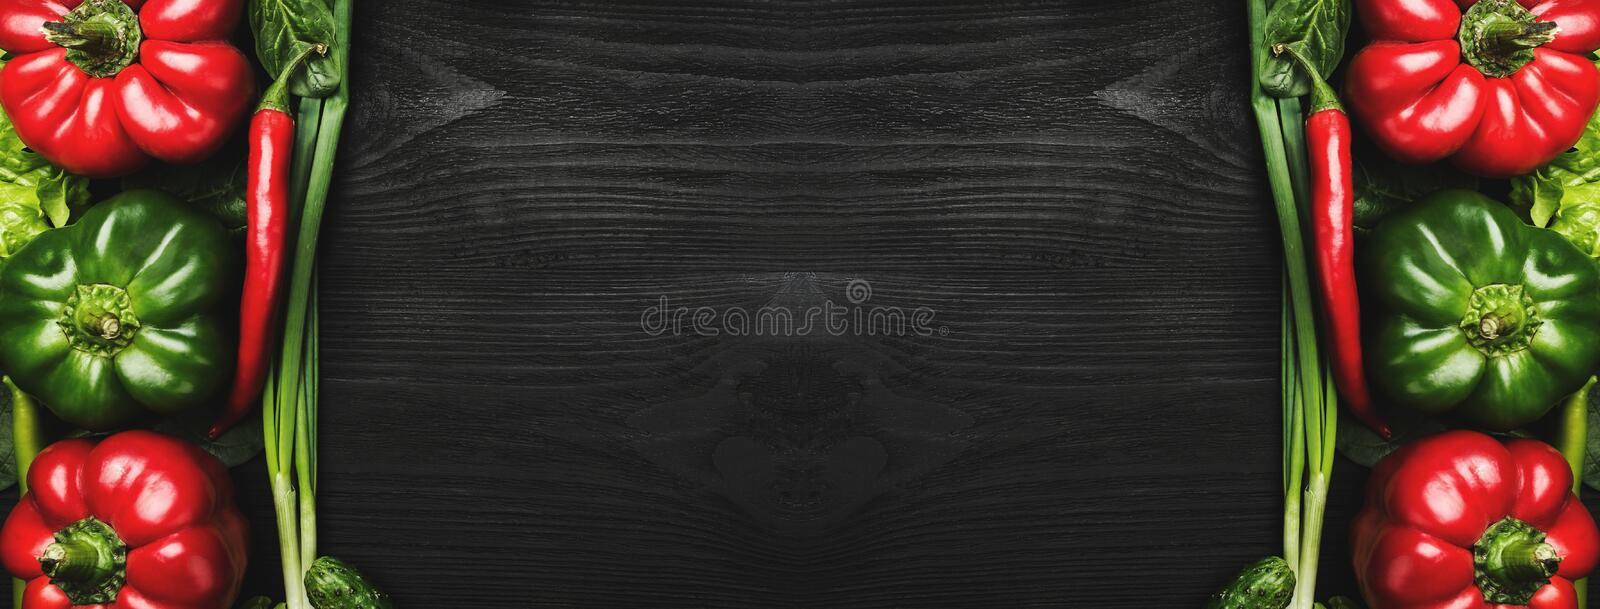 Assortment of fresh vegetables arranged in the frame shape on black wooden background, with space for text stock images